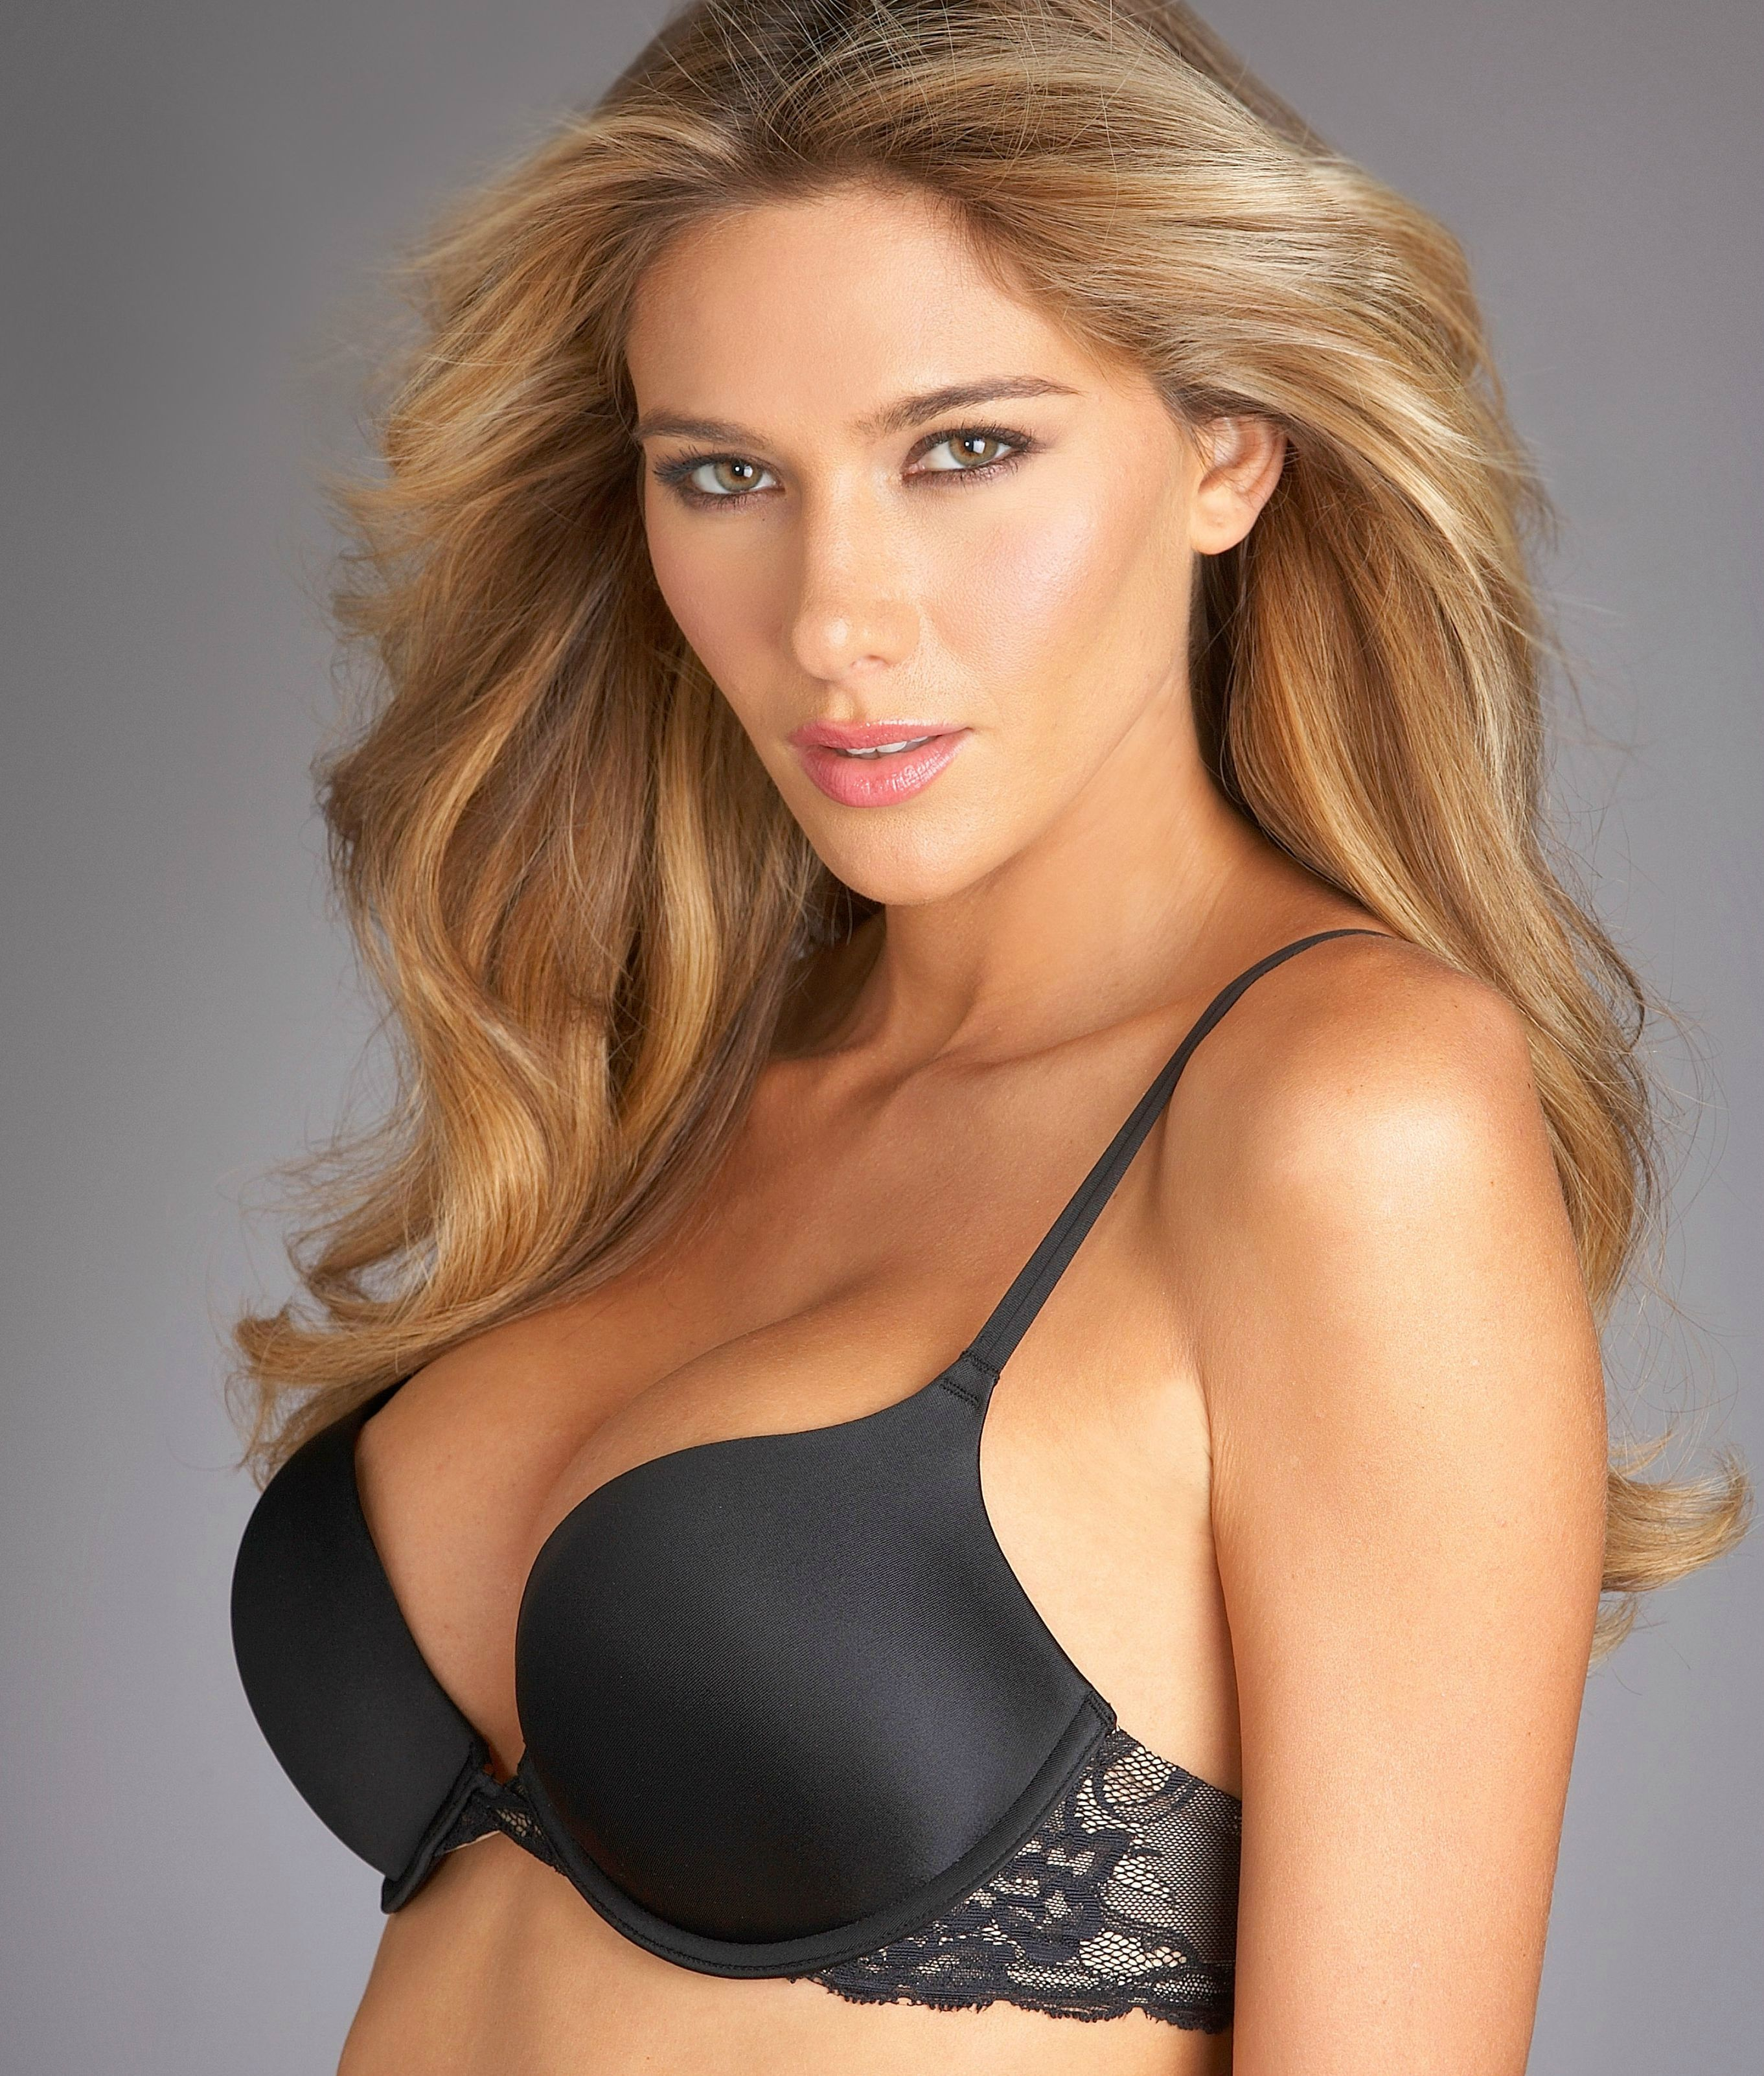 May (Maggi Caruthers) Miss August 2014 Playboy Playmate of the Month